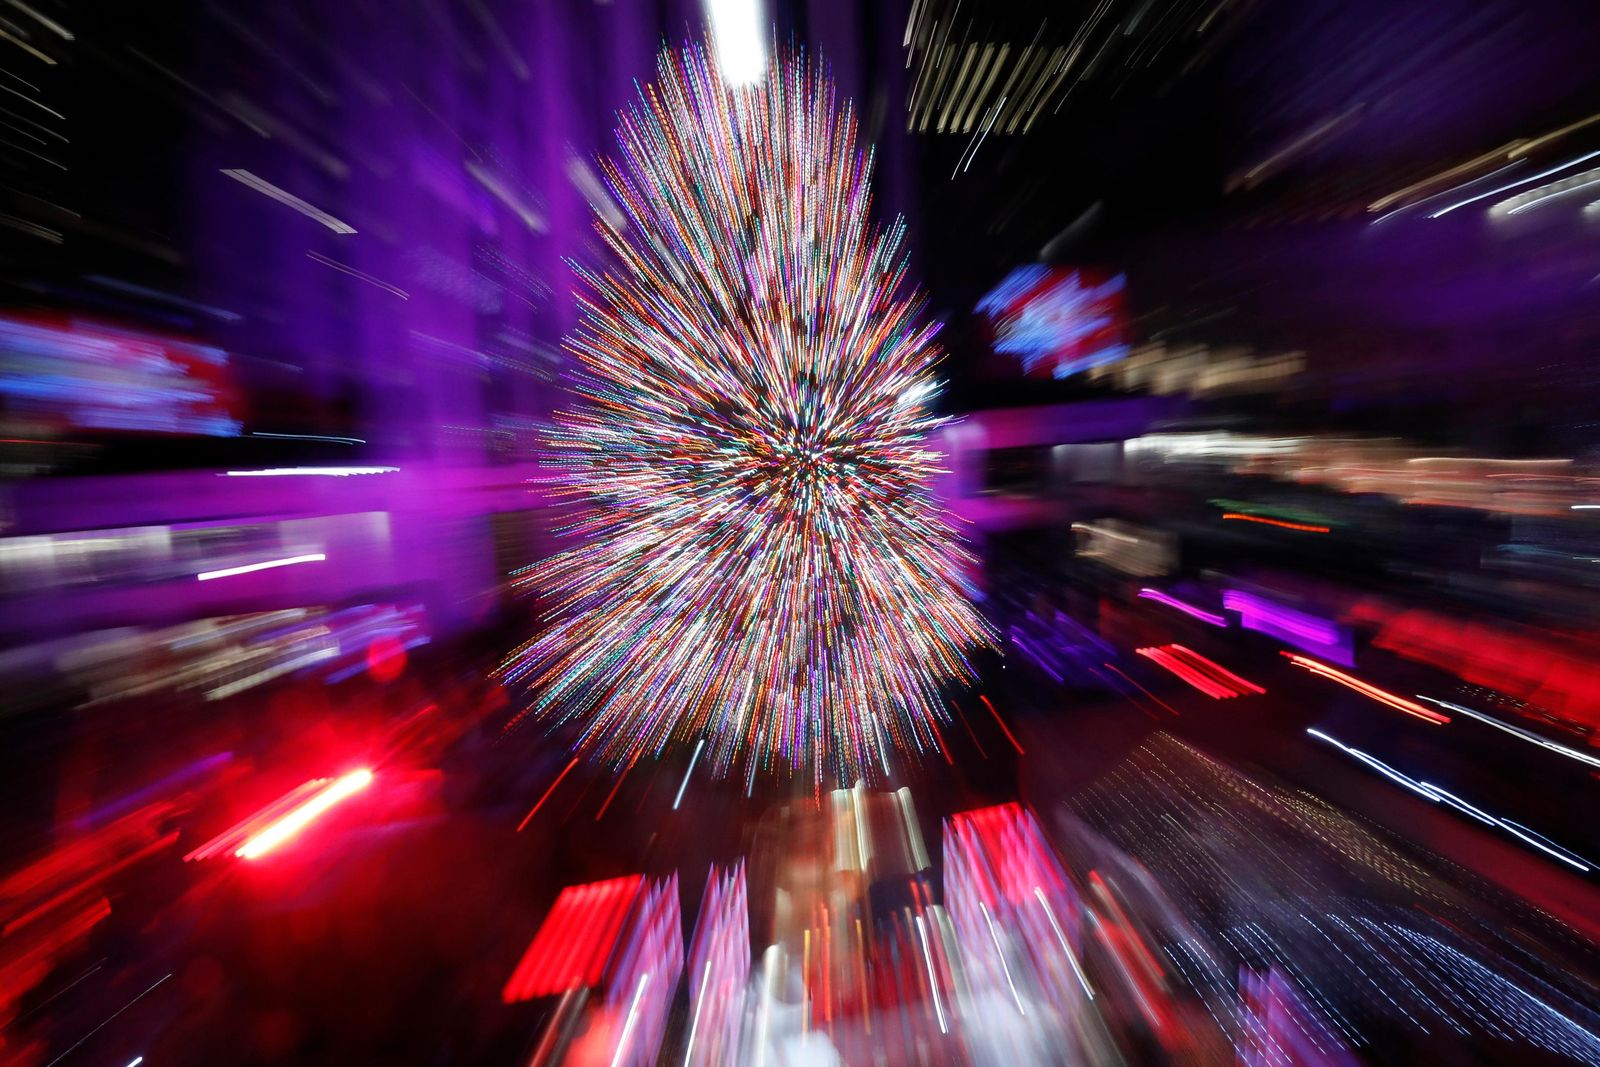 The Rockefeller Center Christmas Tree is shown in a time exposure in which the photographer's lens was zoomed simultaneously during the exposure at the 87th annual Rockefeller Center Christmas Tree lighting ceremony, Wednesday, Dec. 4, 2019, in New York. (AP Photo/Kathy Willens)